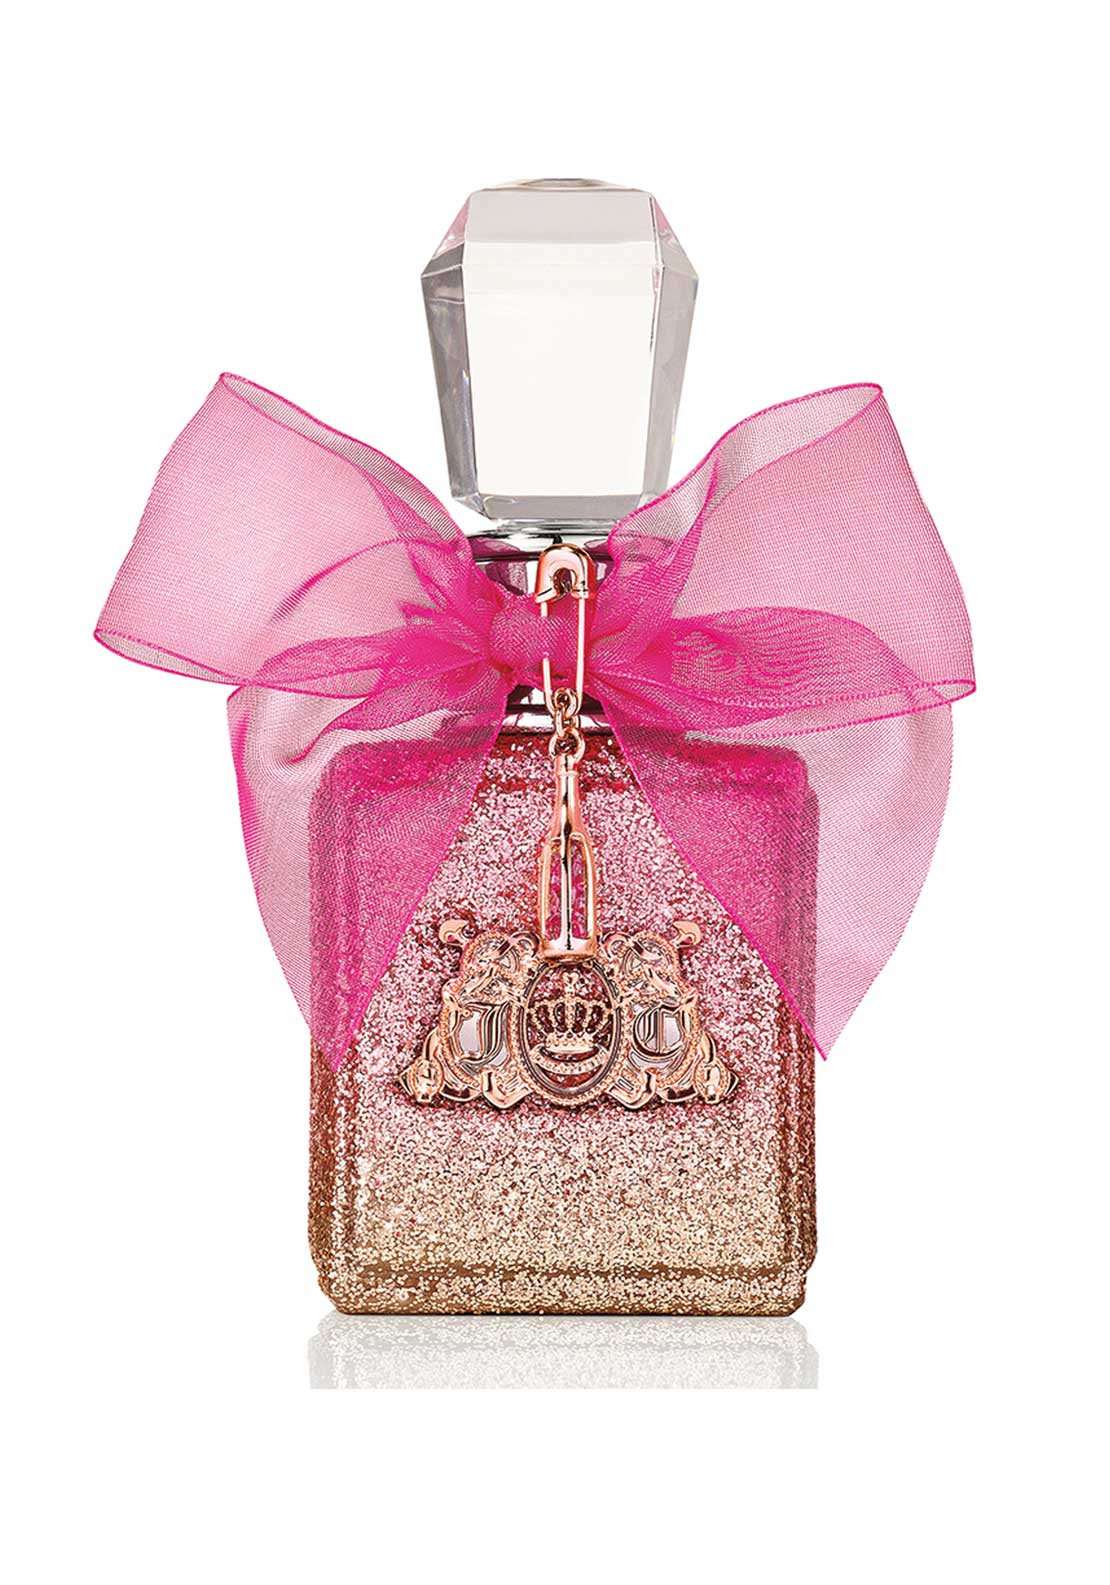 Juicy Couture Viva La Juicy Rose Eau de Parfum, 30ml